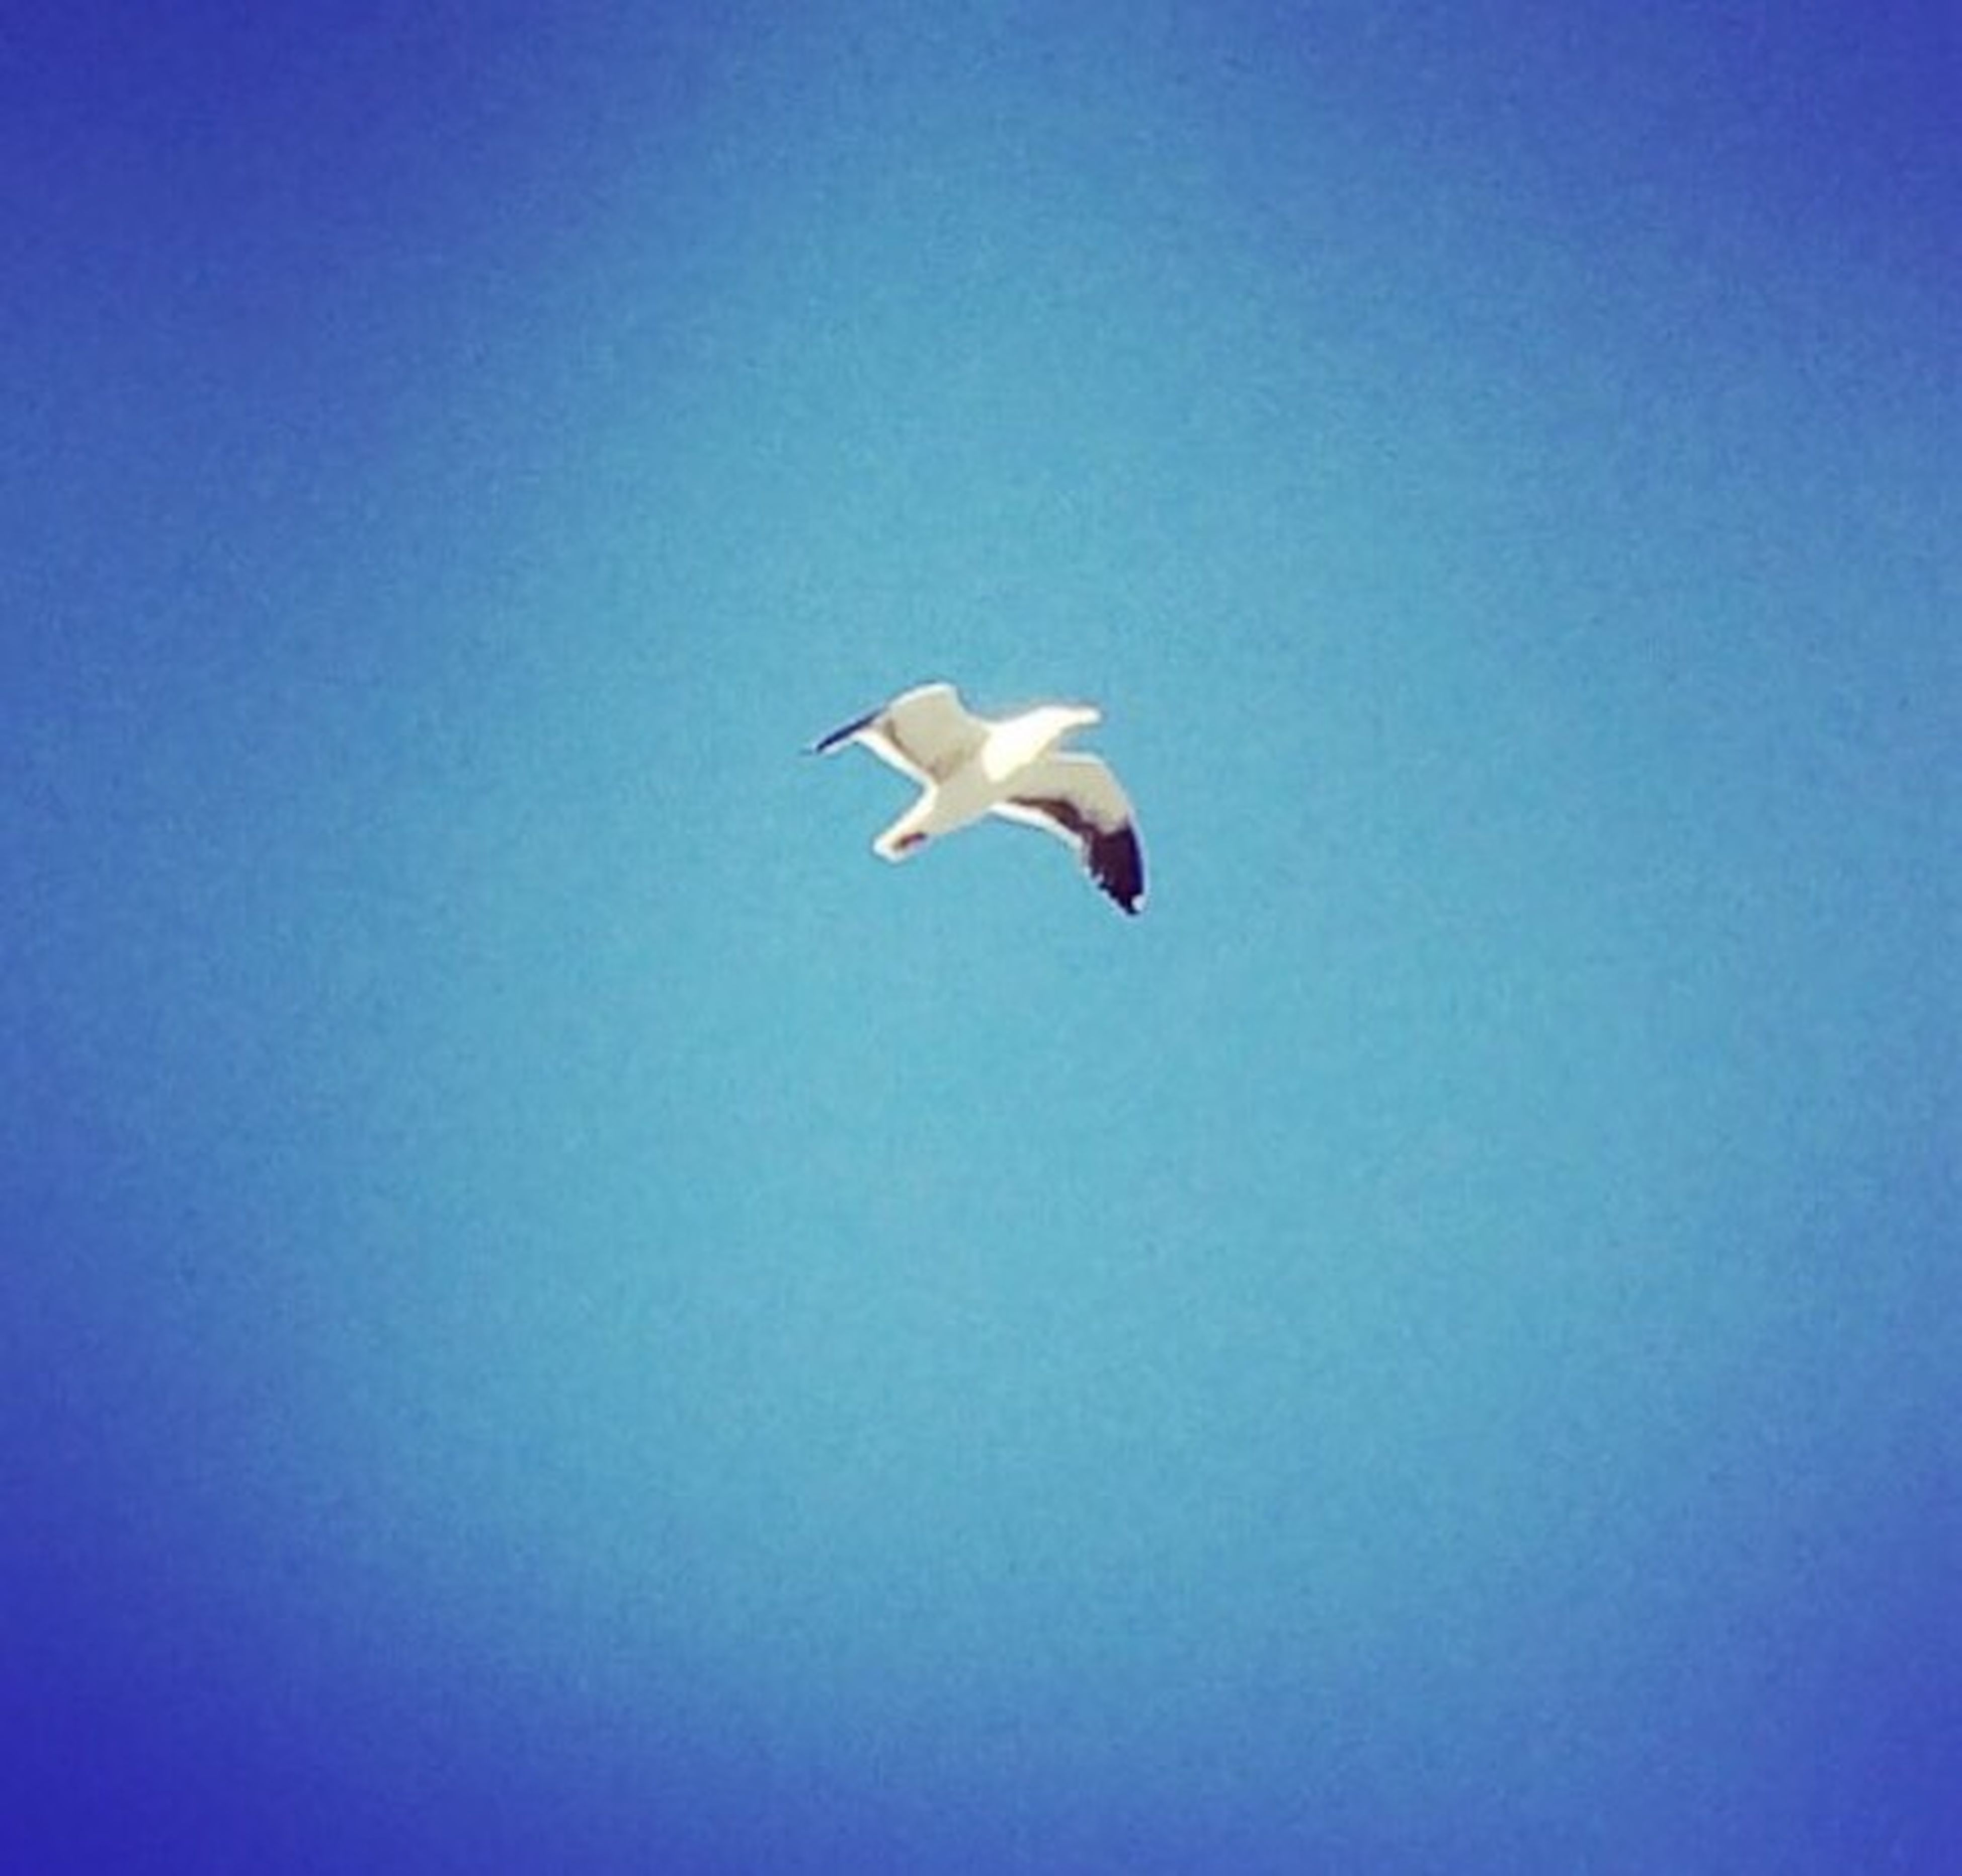 flying, bird, animal themes, spread wings, animals in the wild, wildlife, mid-air, one animal, blue, low angle view, clear sky, copy space, seagull, nature, freedom, motion, full length, no people, zoology, on the move